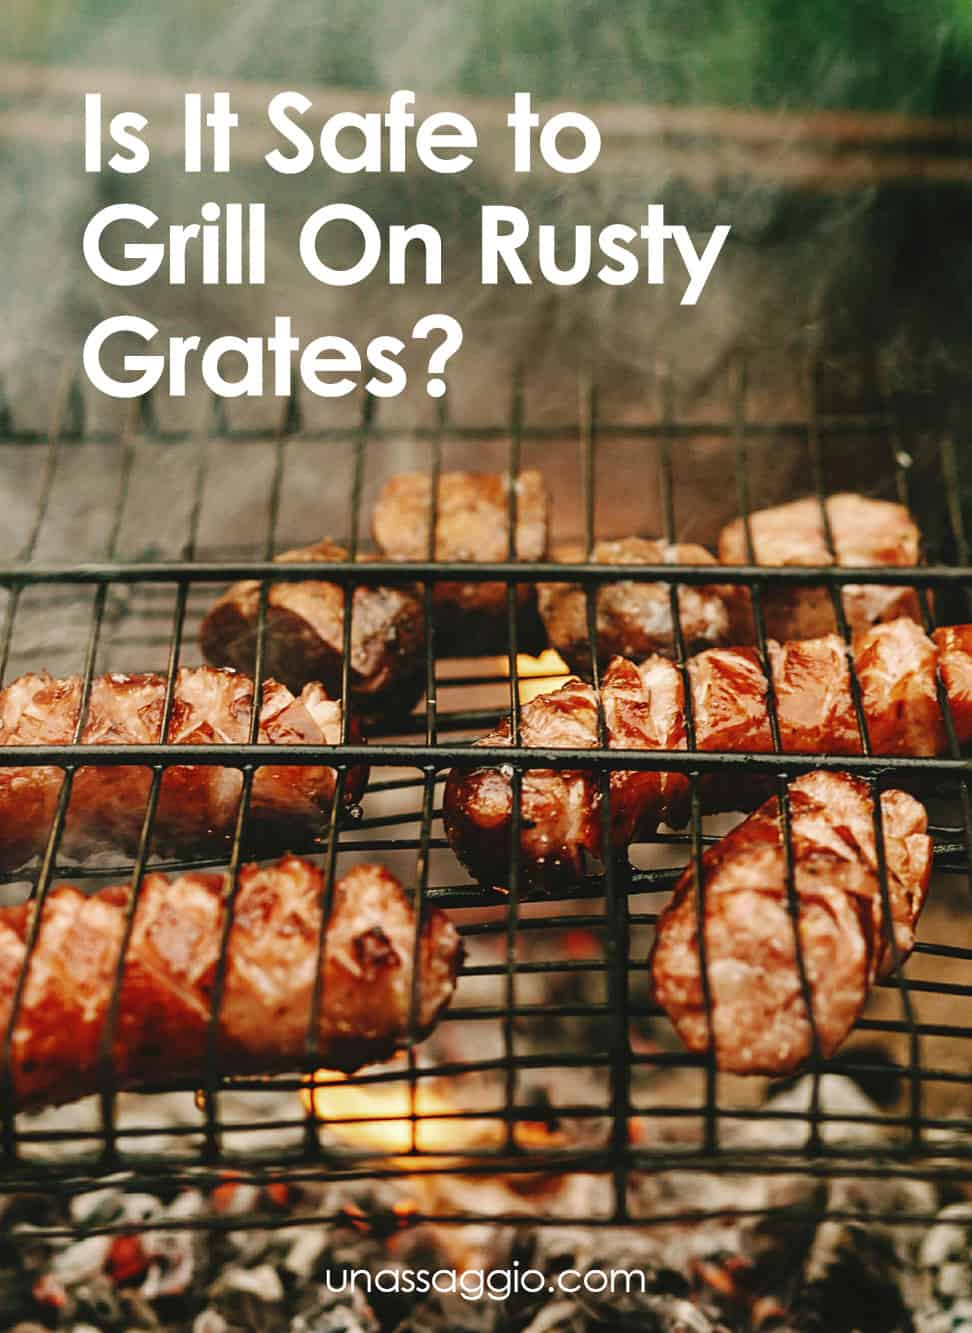 Is It Safe To Grill On Rusty Grates?